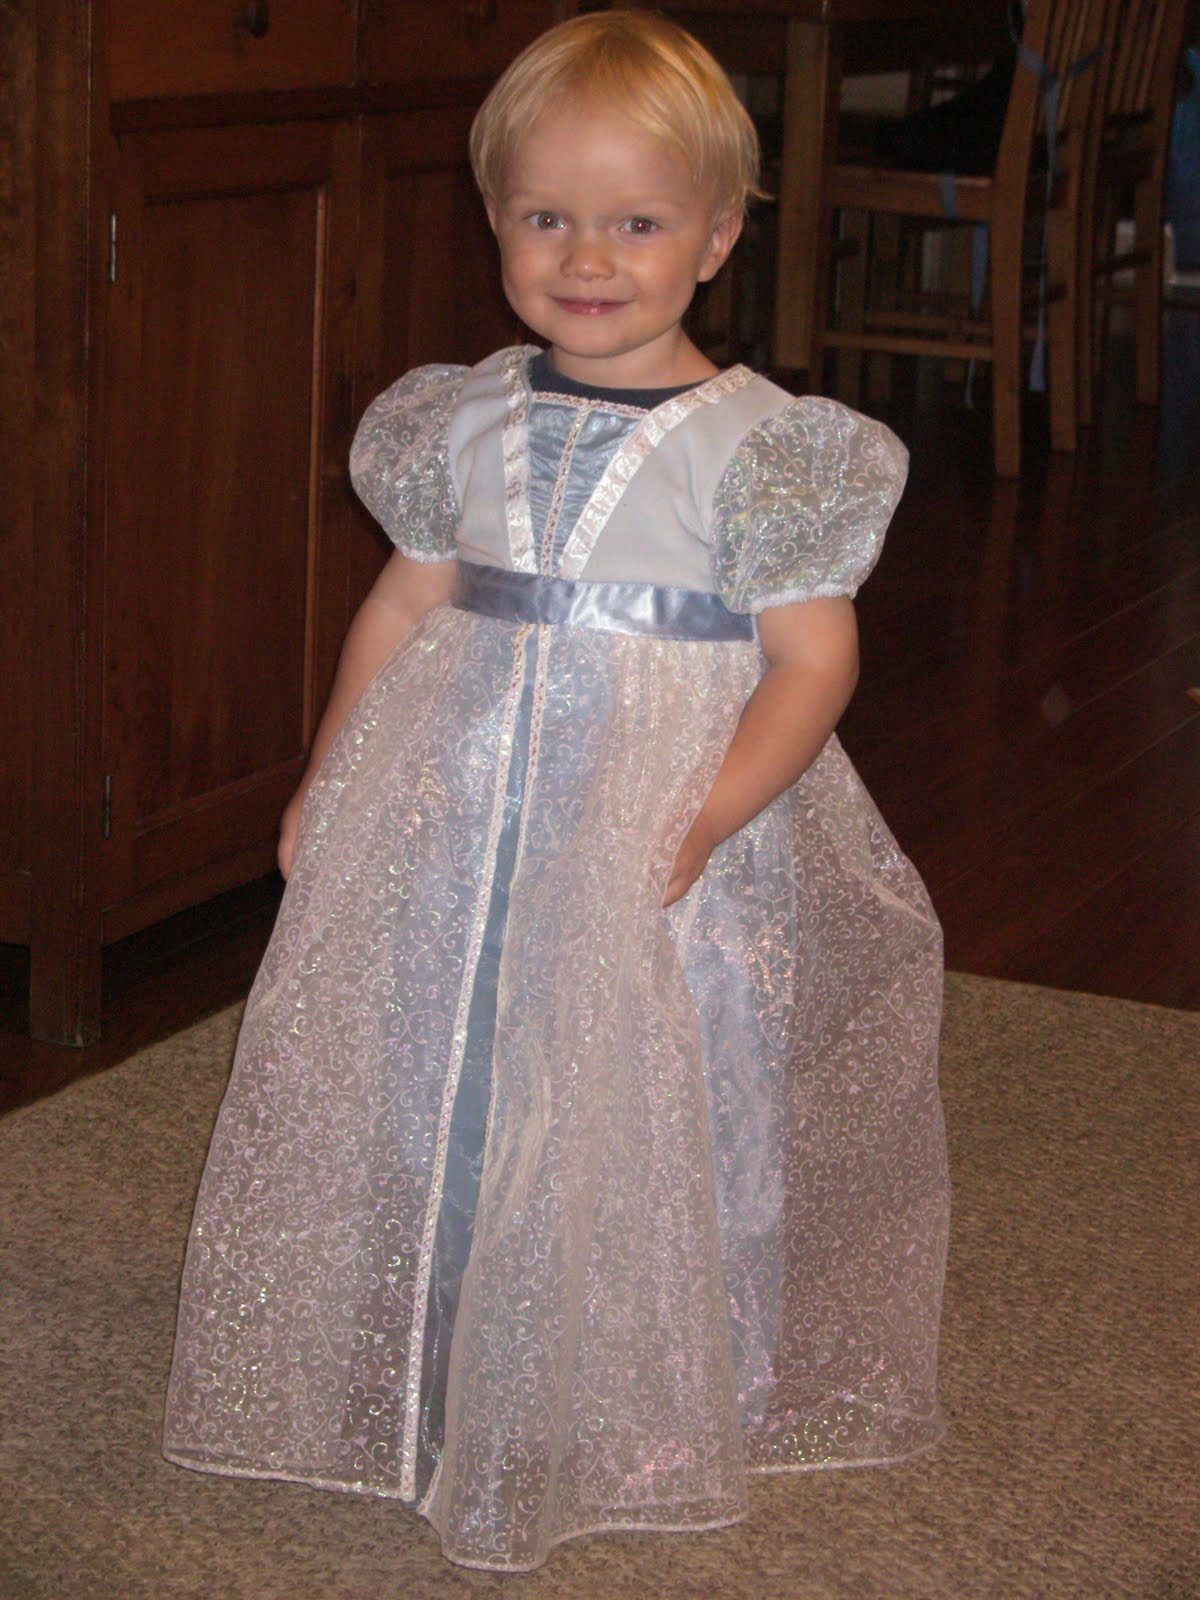 Boy Dressed As A Little Girl - Show Your Elegance In 2017